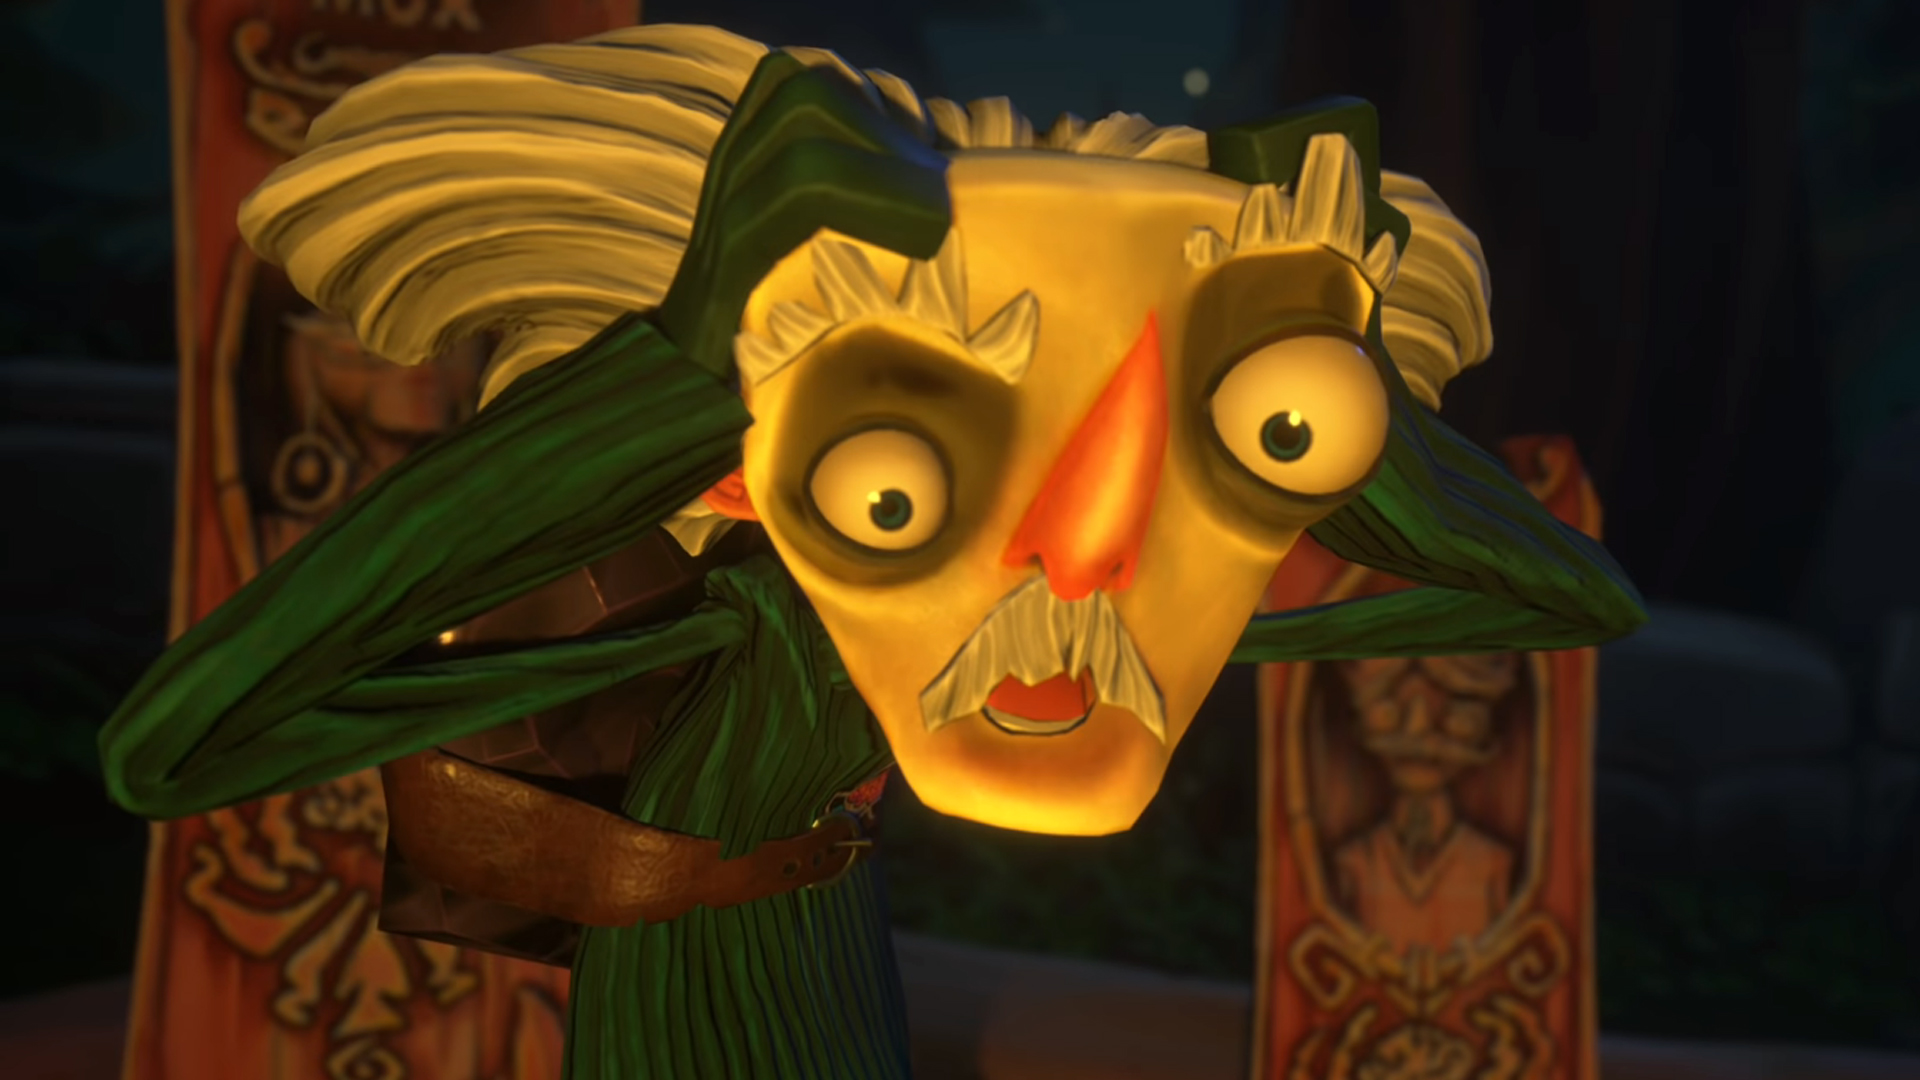 Psychonauts 2 prequel shows what happened to Ford after the first game